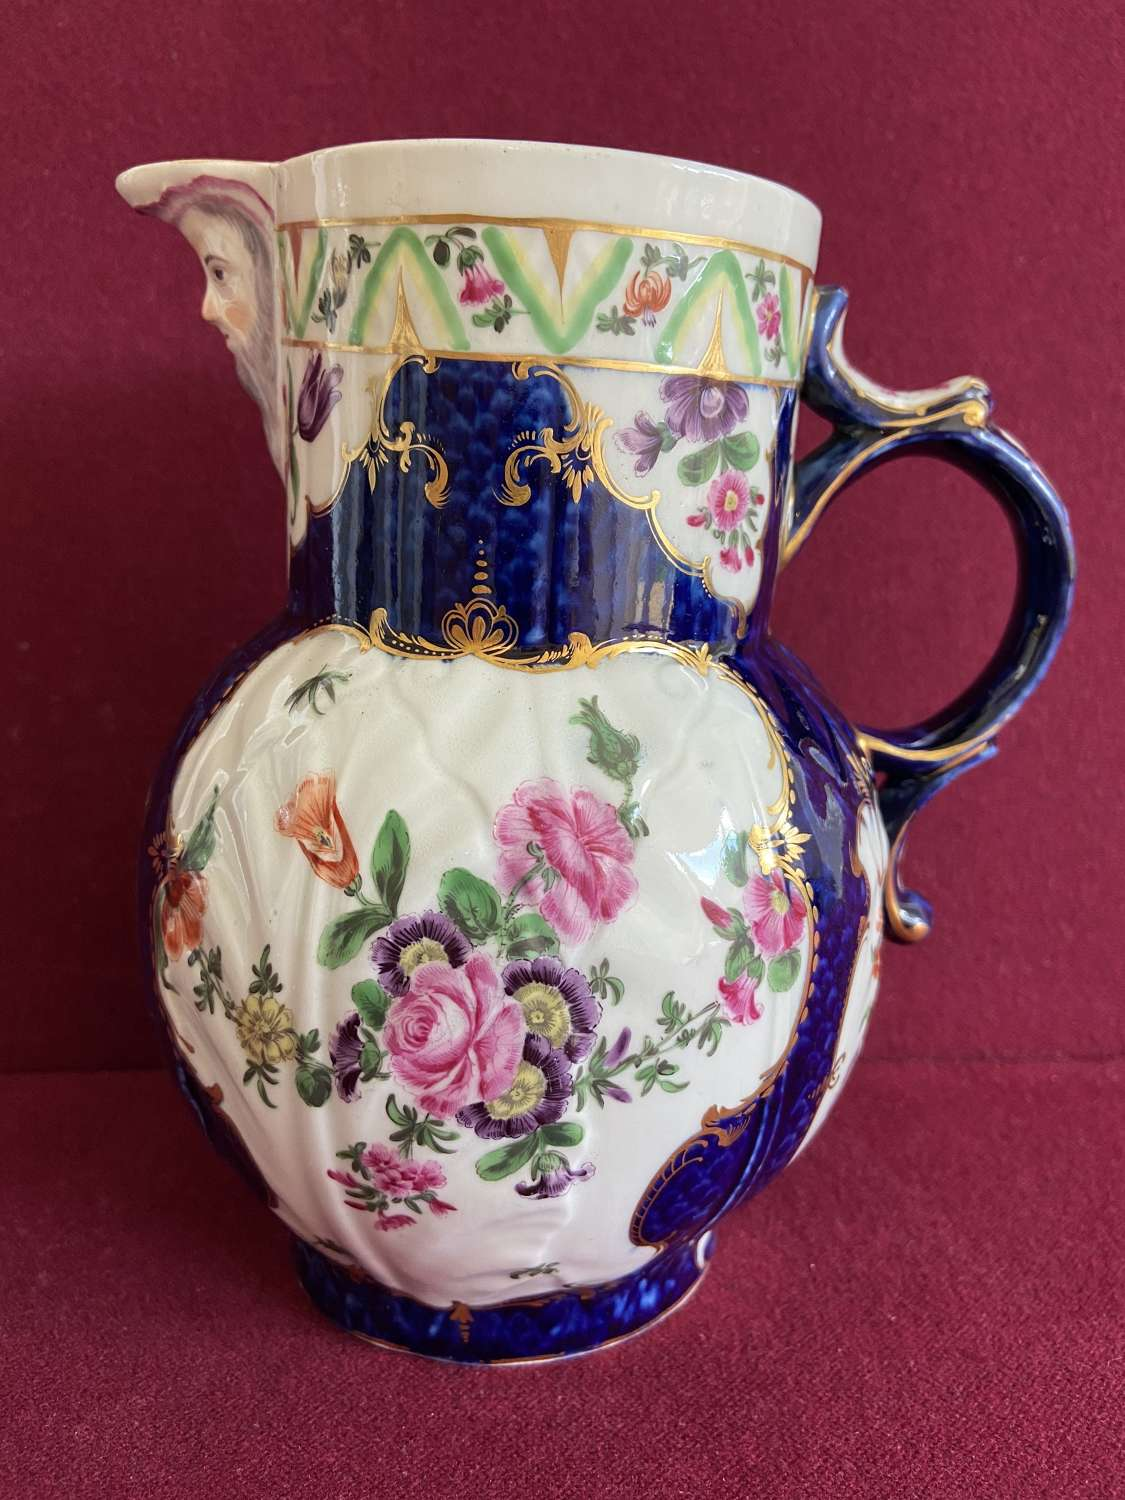 A Fine First Period Dr Wall Worcester 'Blue Scale' Mask Jug c.1770